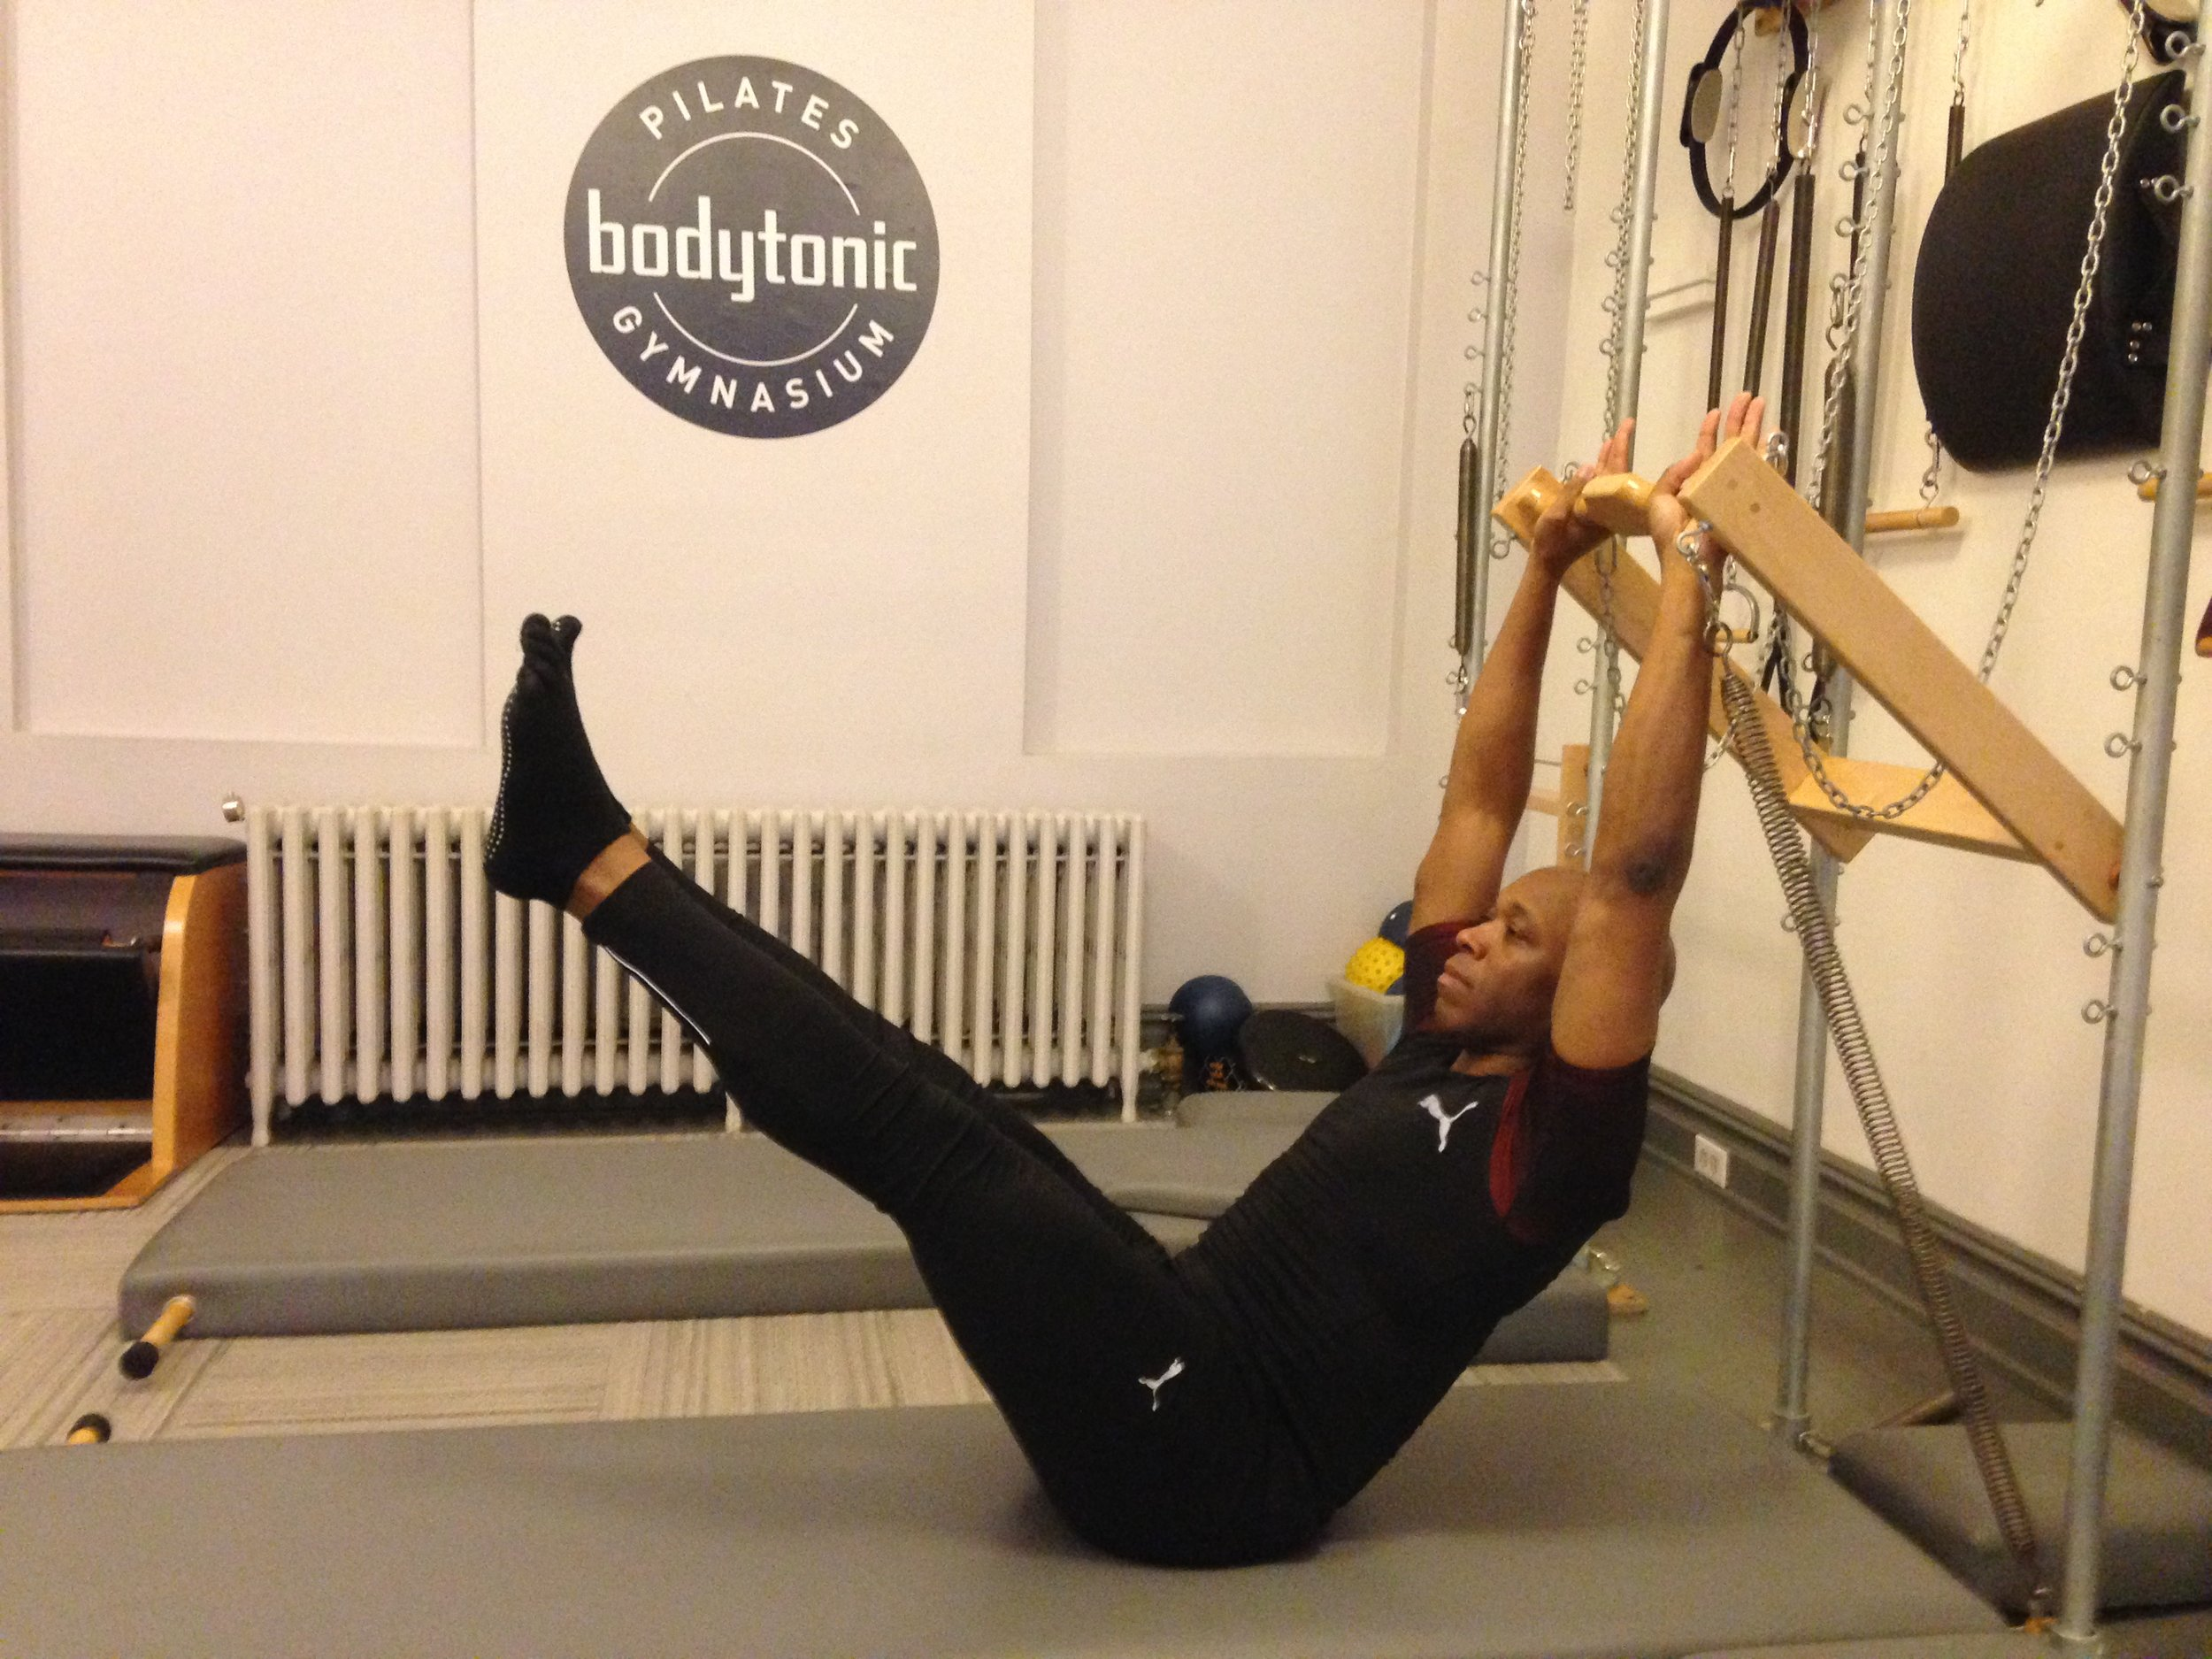 Sean, a BodyTonic Pilates client